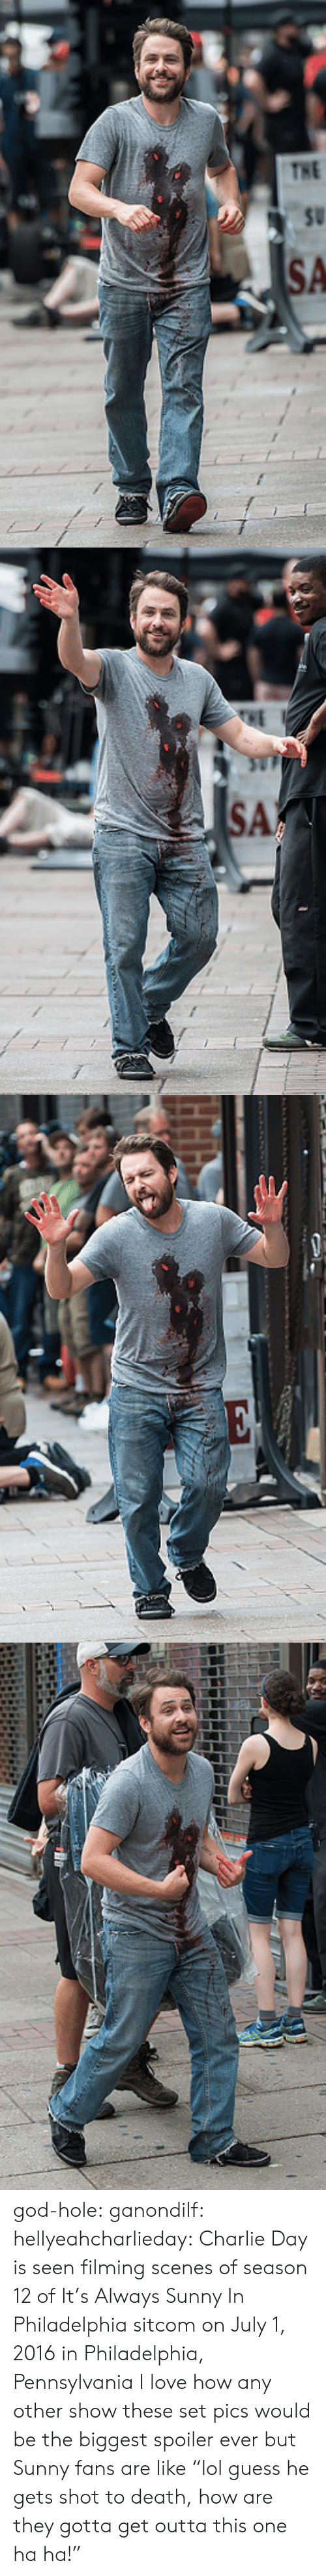 "Guess He: god-hole:  ganondilf:  hellyeahcharlieday:  Charlie Day is seen filming scenes of season 12 of It's Always Sunny In Philadelphia sitcom on July 1, 2016 in Philadelphia, Pennsylvania  I love how any other show these set pics would be the biggest spoiler ever but Sunny fans are like ""lol guess he gets shot to death, how are they gotta get outta this one ha ha!"""